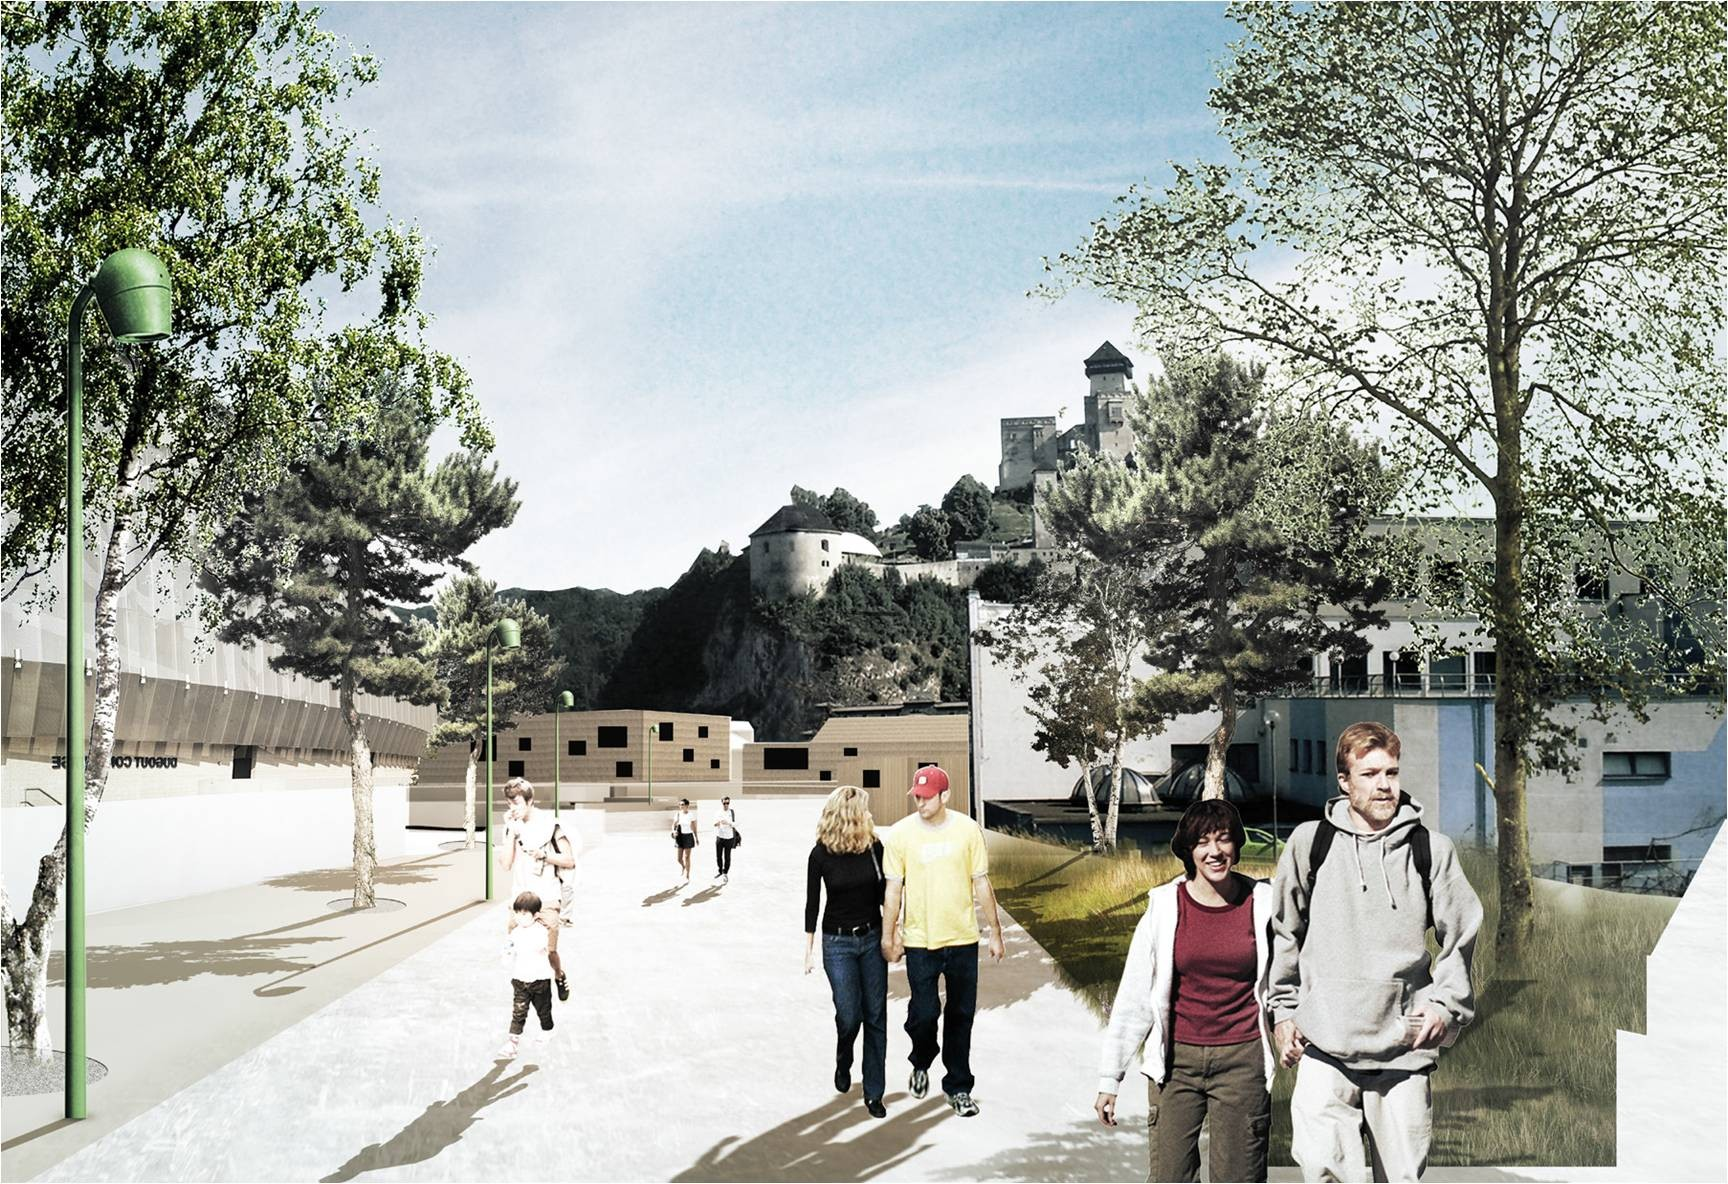 Swedish Team Win Urban Design Competition in Trenčín, First Place. Image Courtesy of City of Trenčín